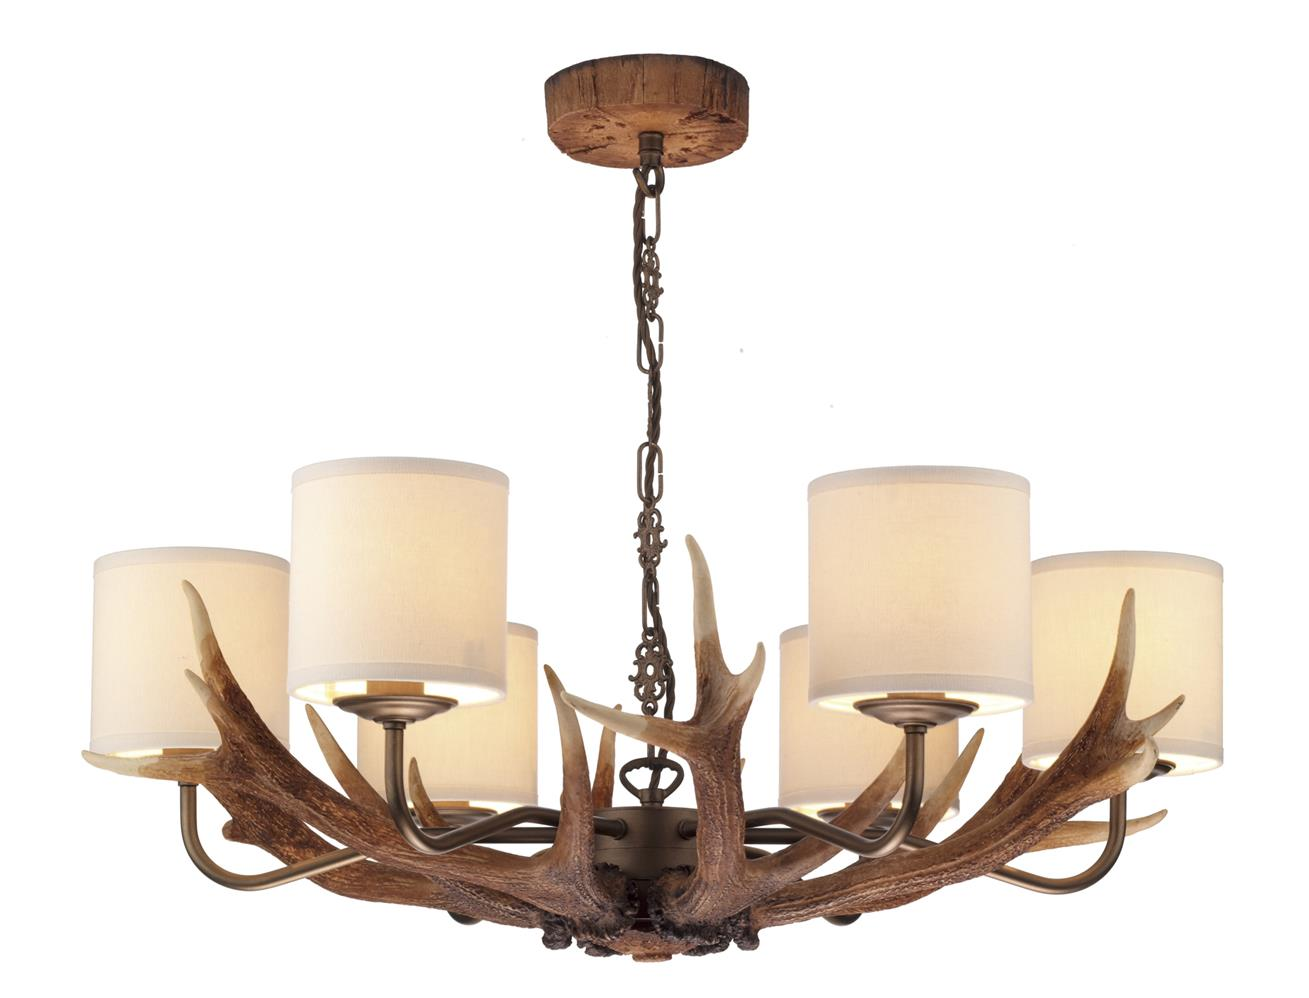 David Hunt Lighting ANT0629 Antler 6  Light Pendant Chandelier with Cream Shades